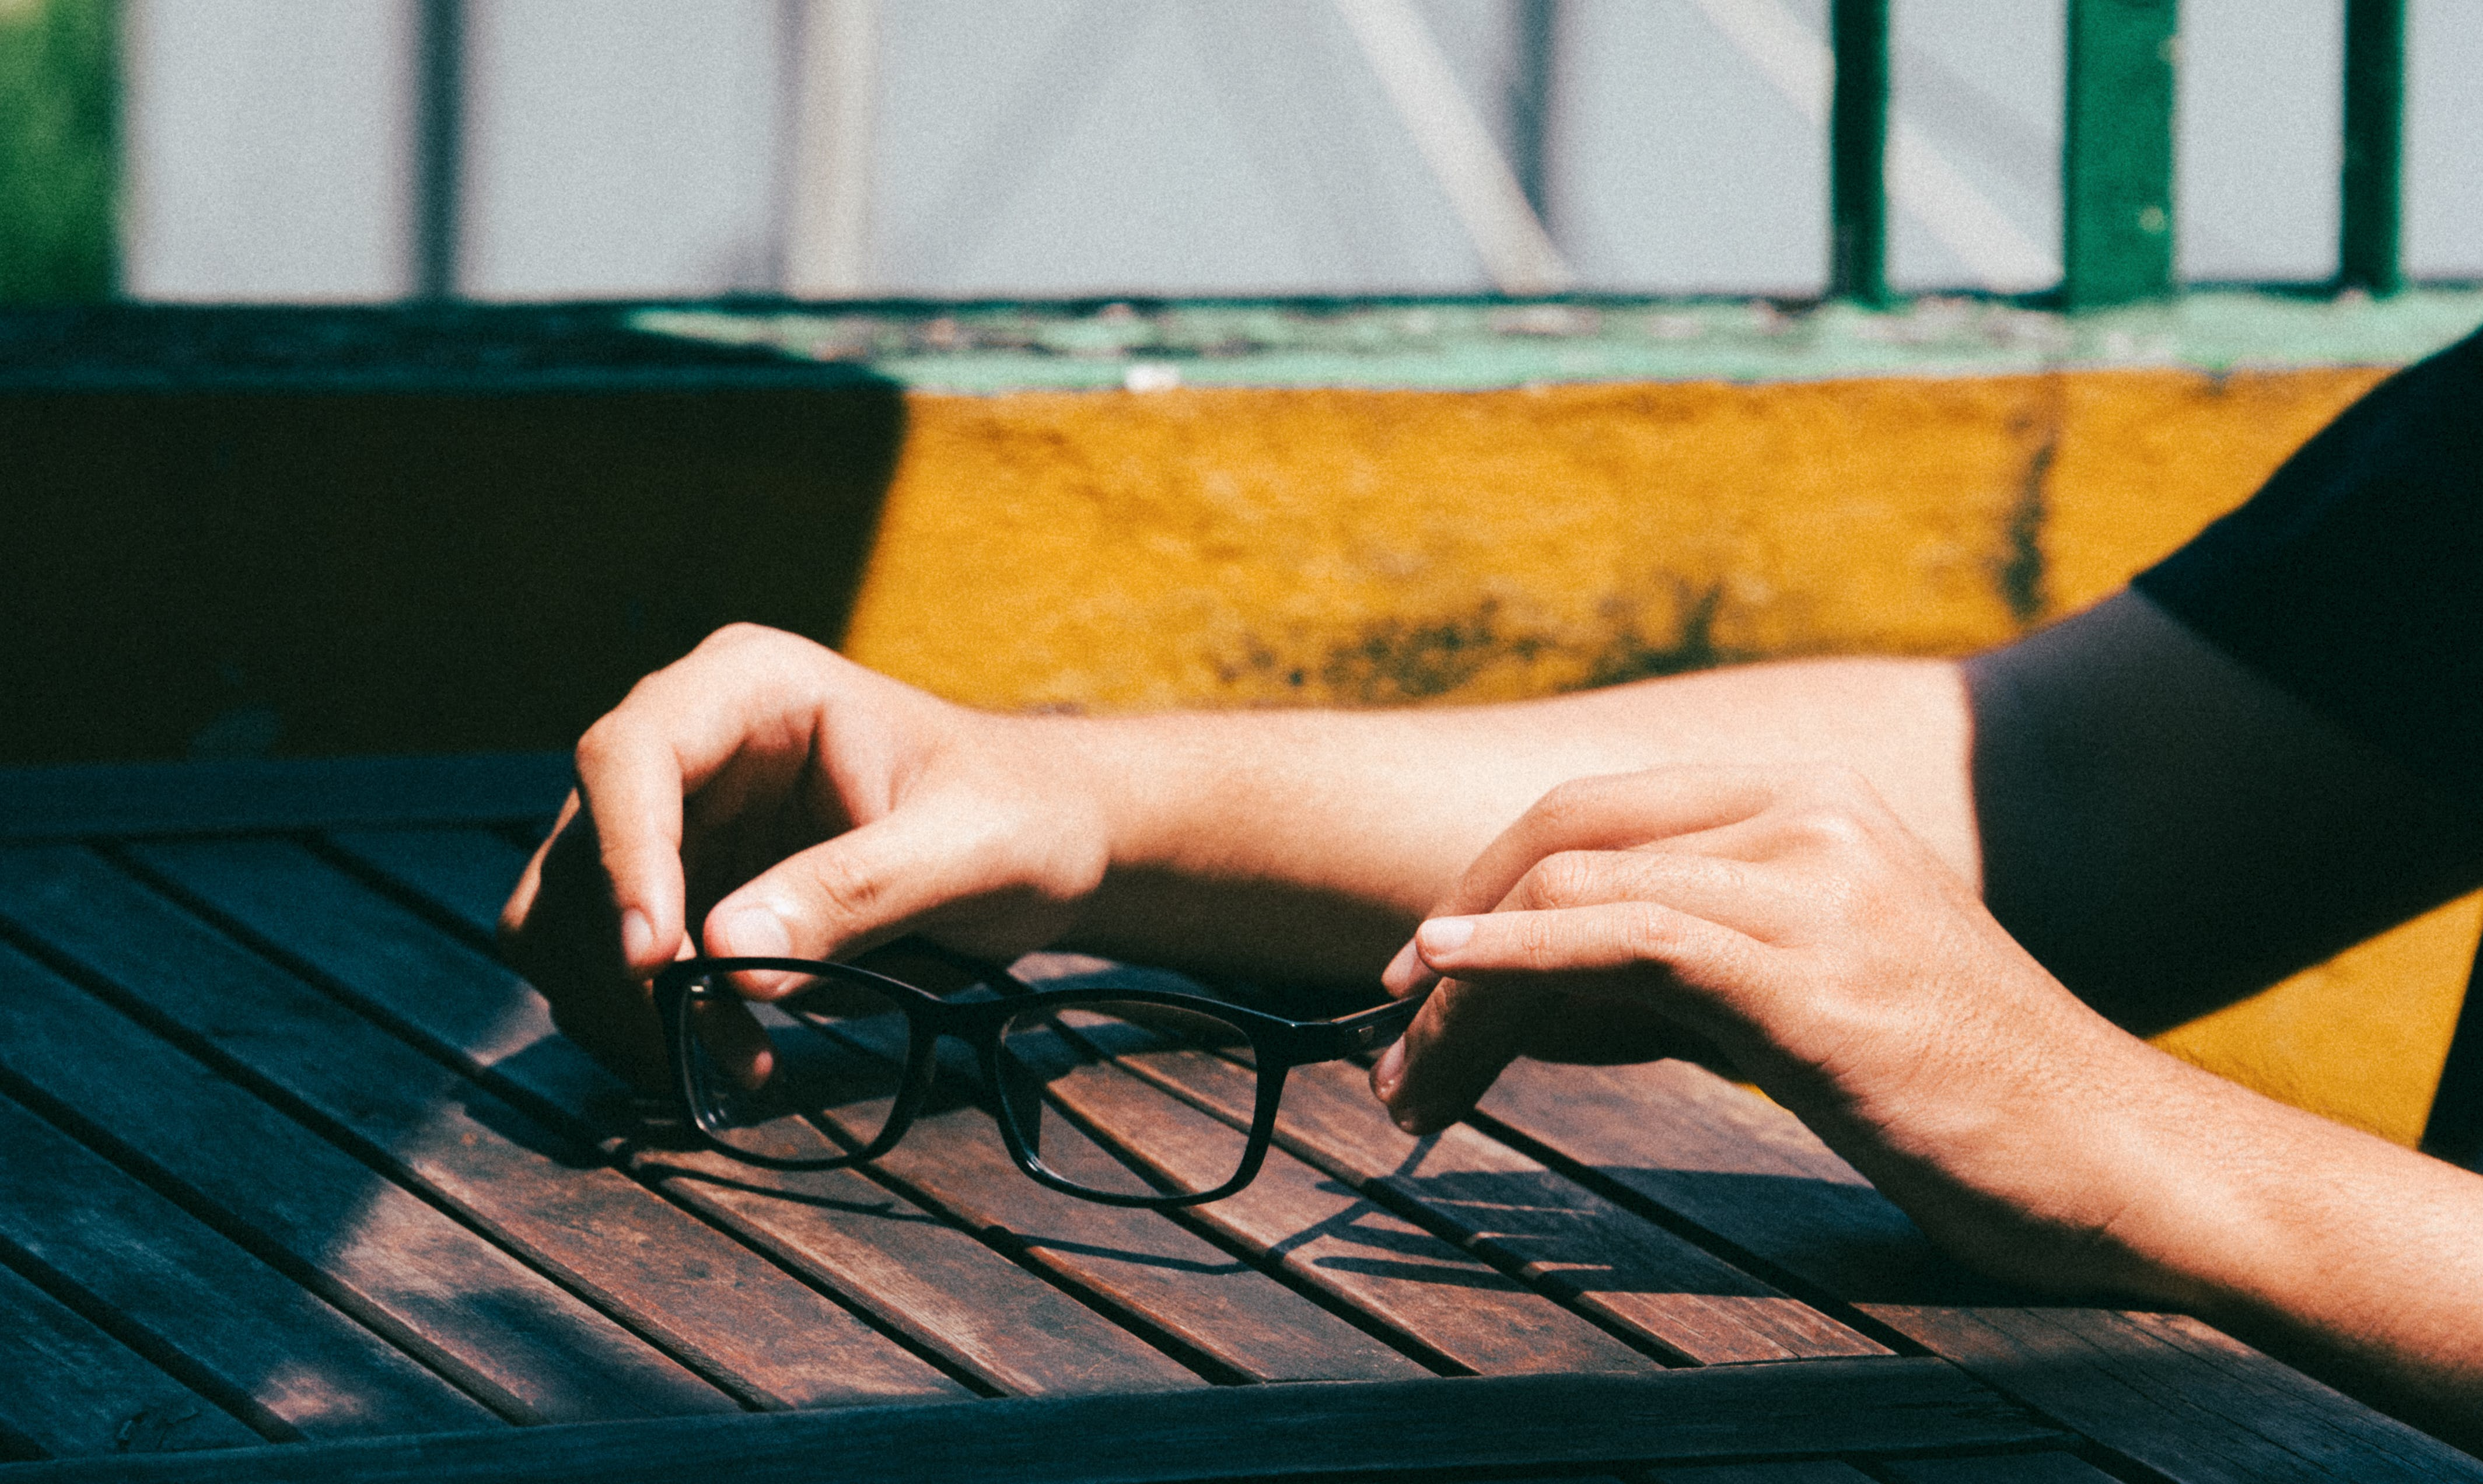 Photo of a Person's Hands Holding a Black Framed Eyeglasses